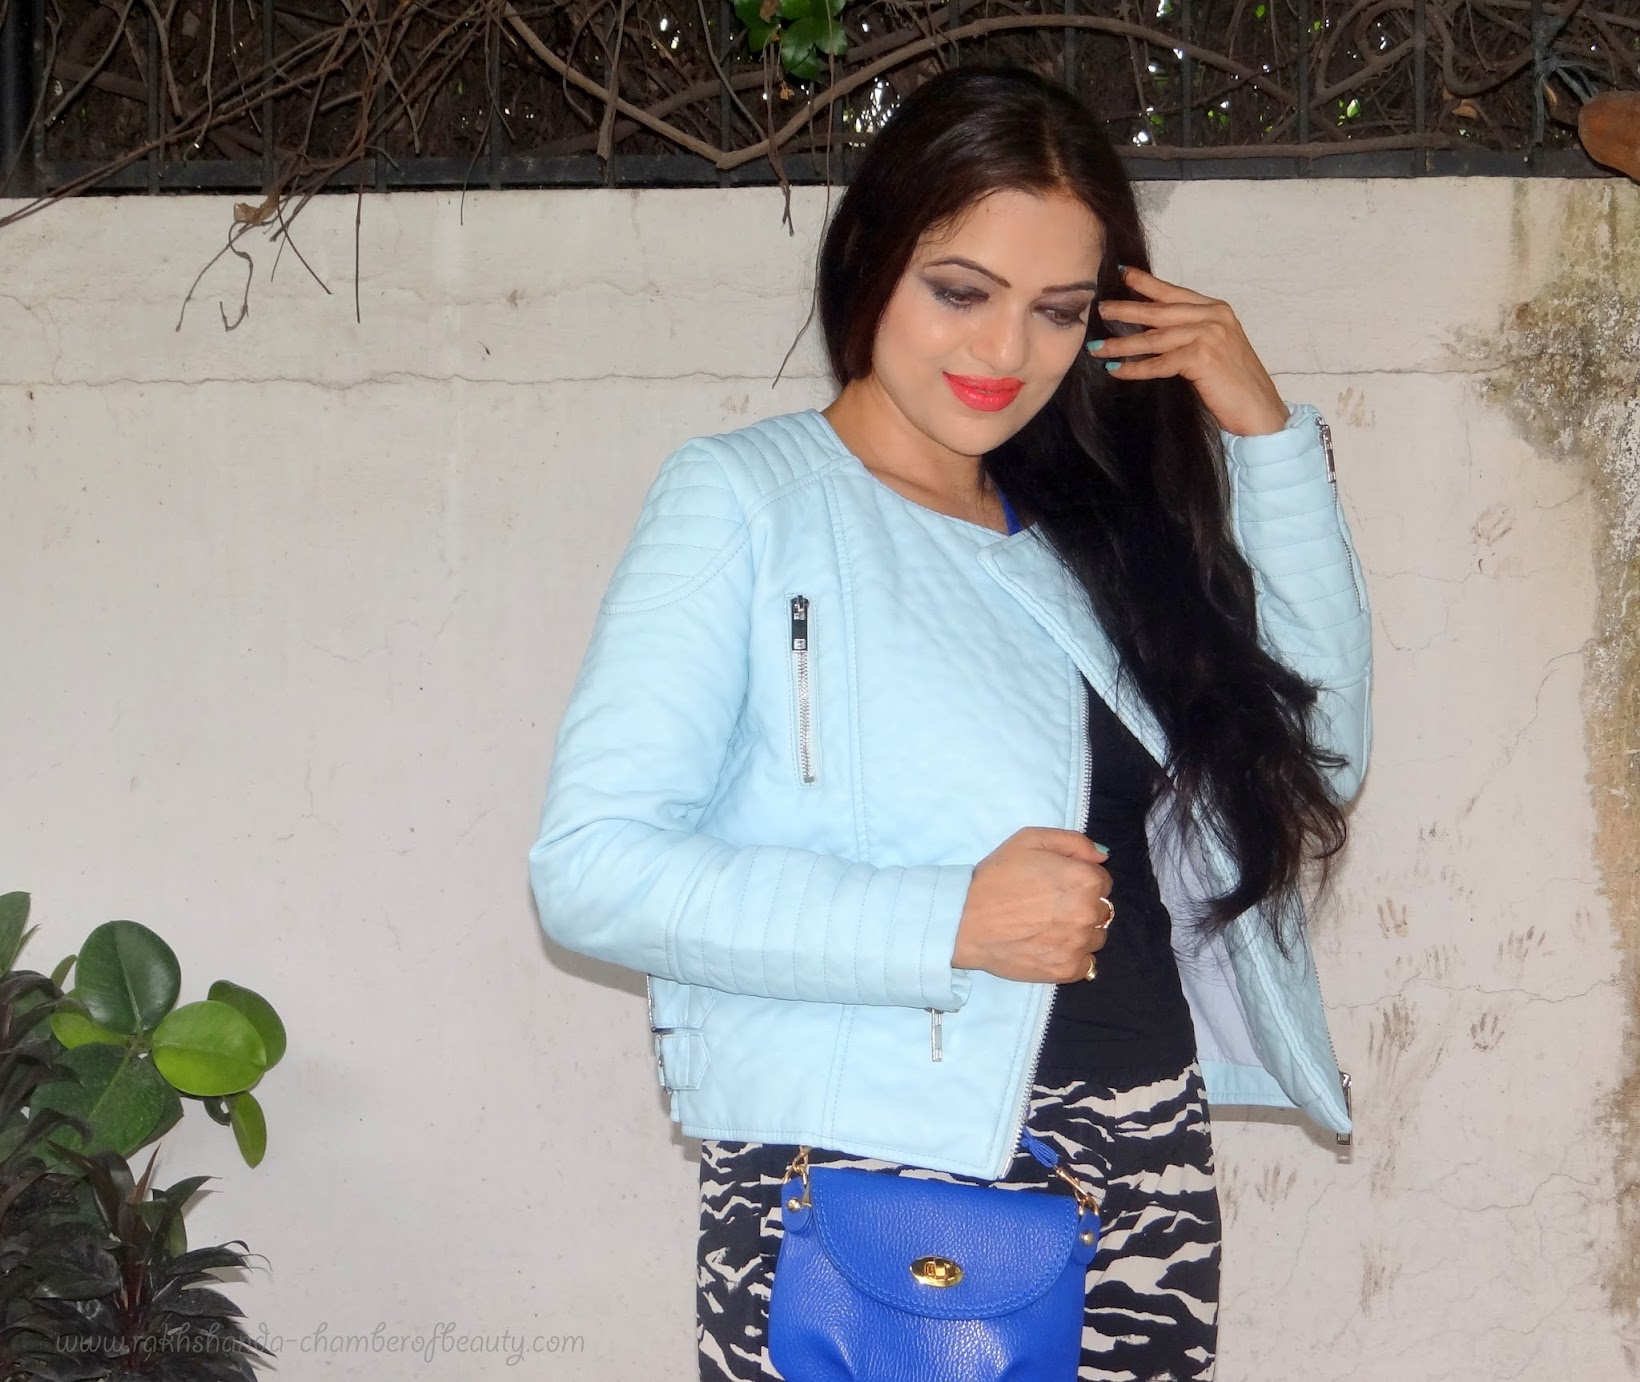 Comfortably Casual-OOTD   Styling a leather jacket, Pastel blue leather jacket, Stylemoi leather jacket, fashion trend, Indian fashion Blogger, Chamber of Beauty